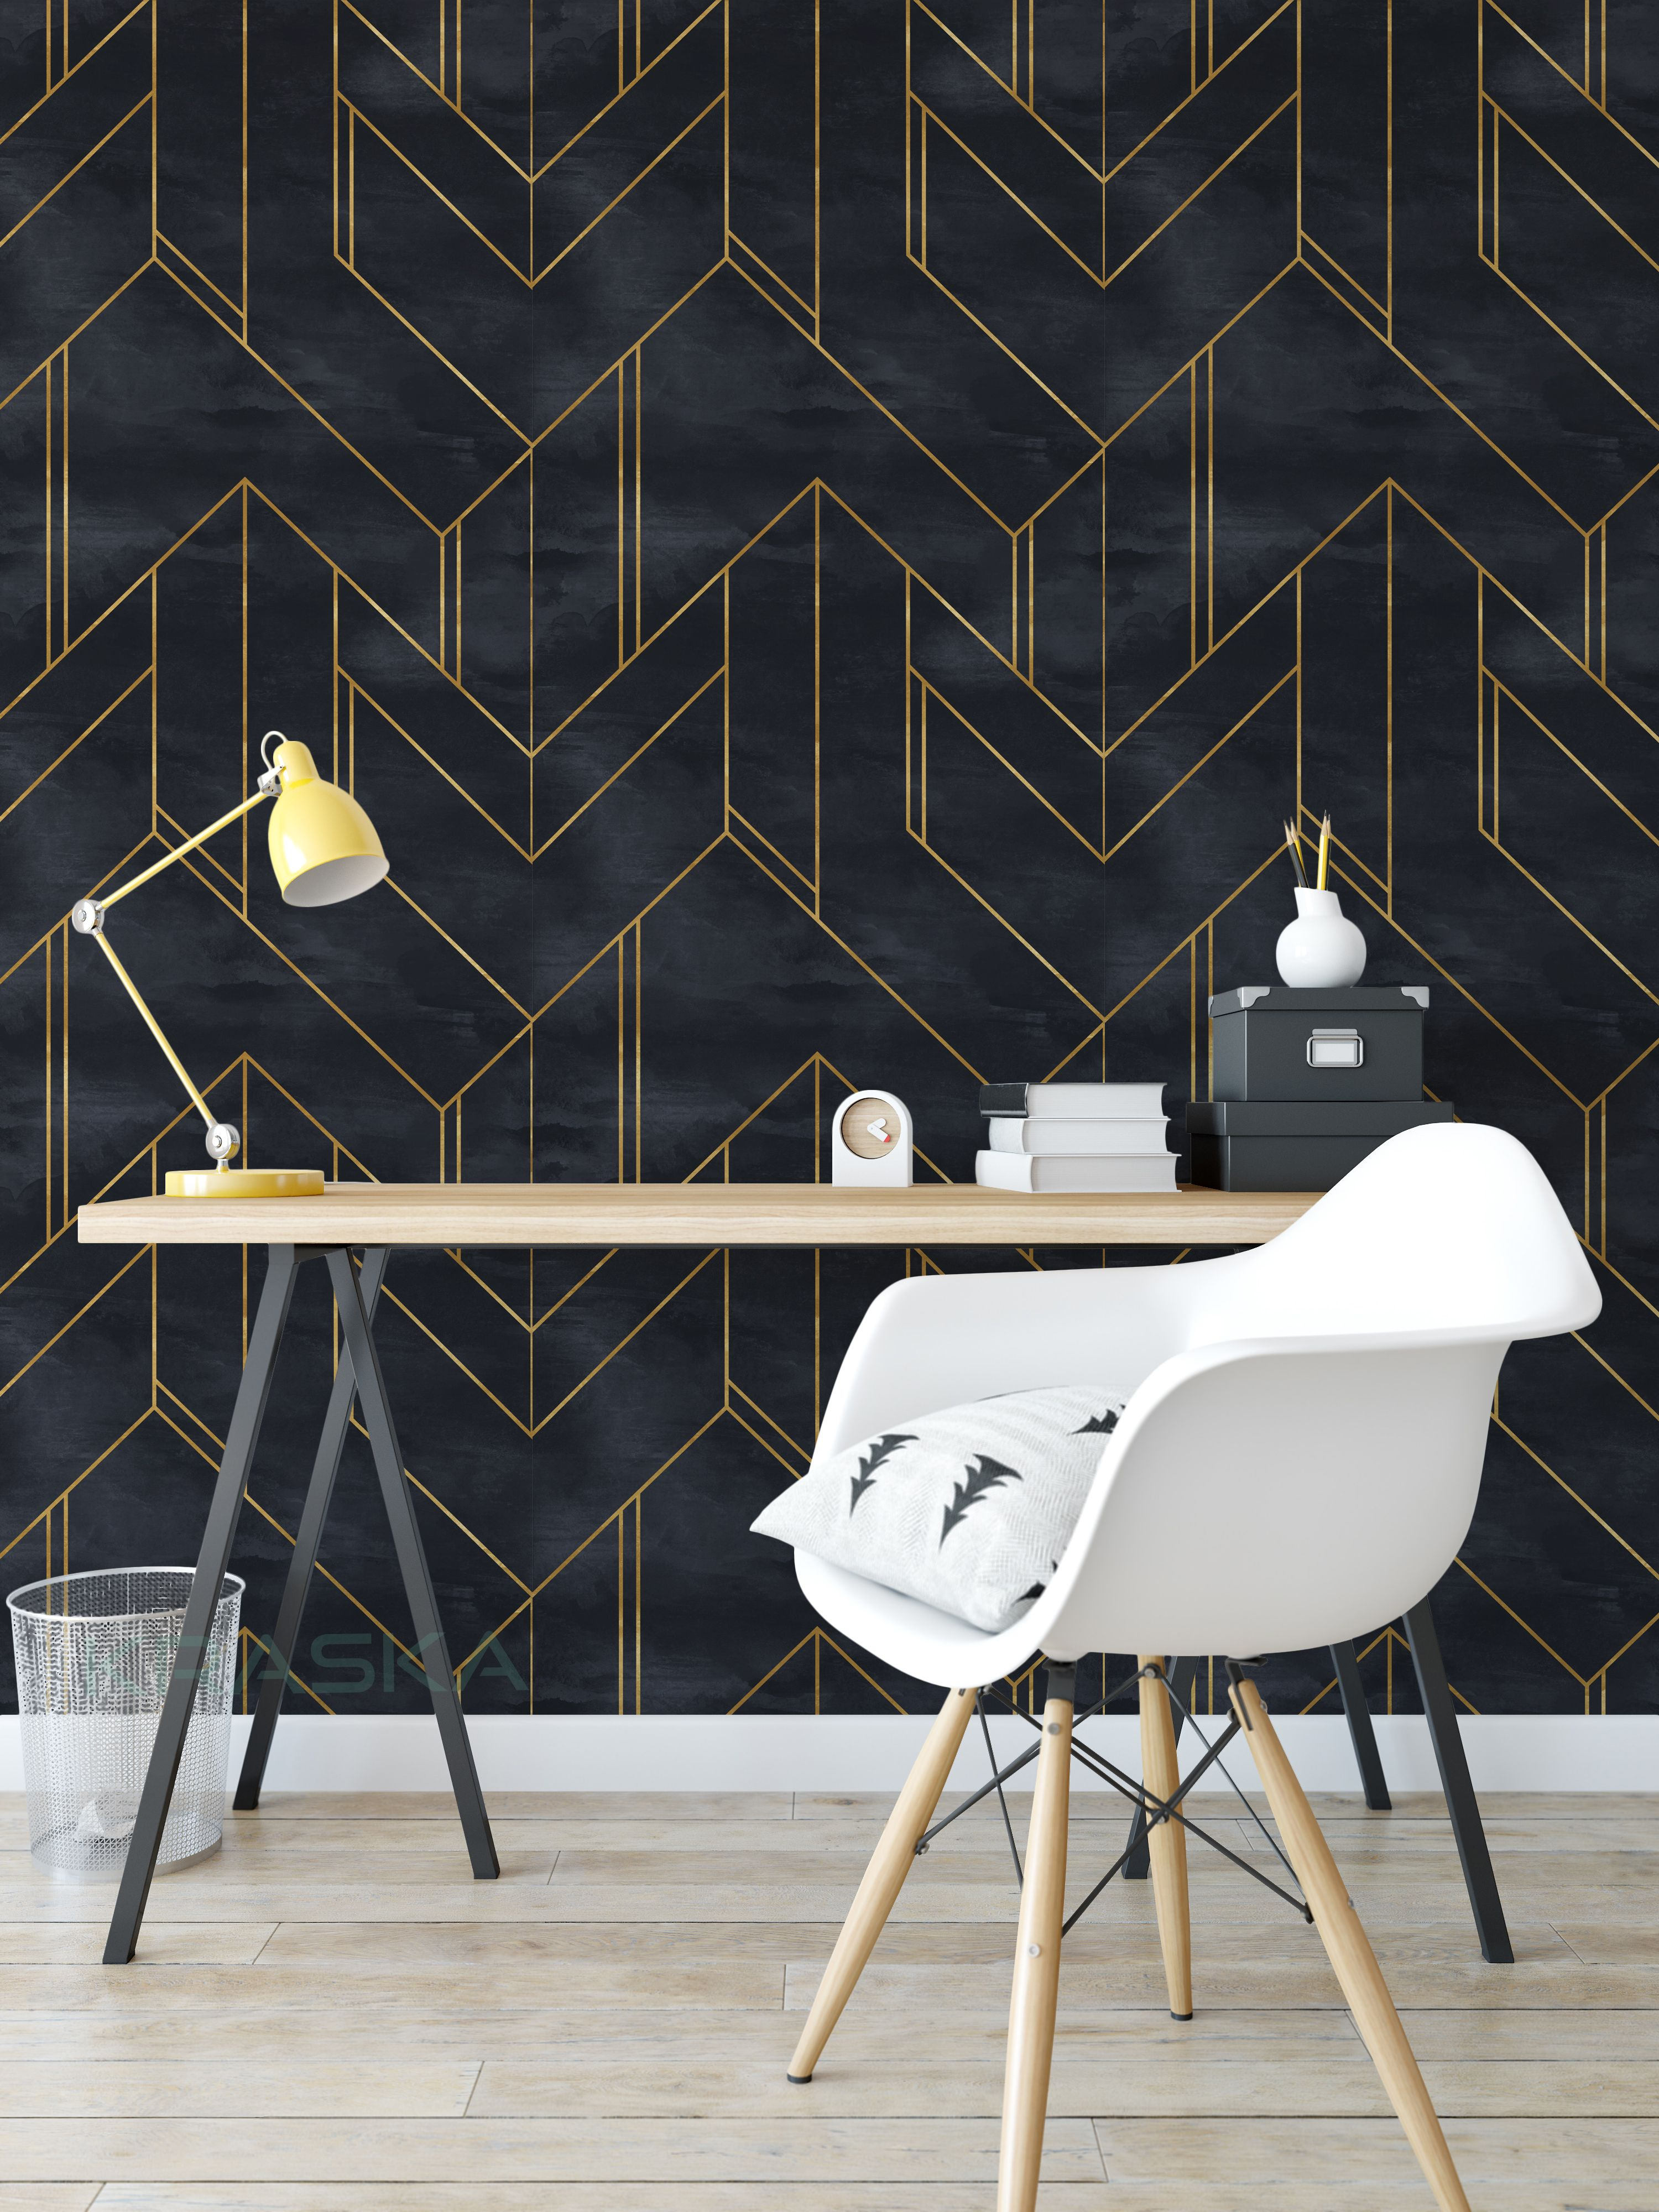 Peel And Stick Wallpaper Geometric Gold Line Black Kraska Removable Wall Decor Accent Walls In Living Room Bedroom Wallpaper Accent Wall Wallpaper Accent Wall